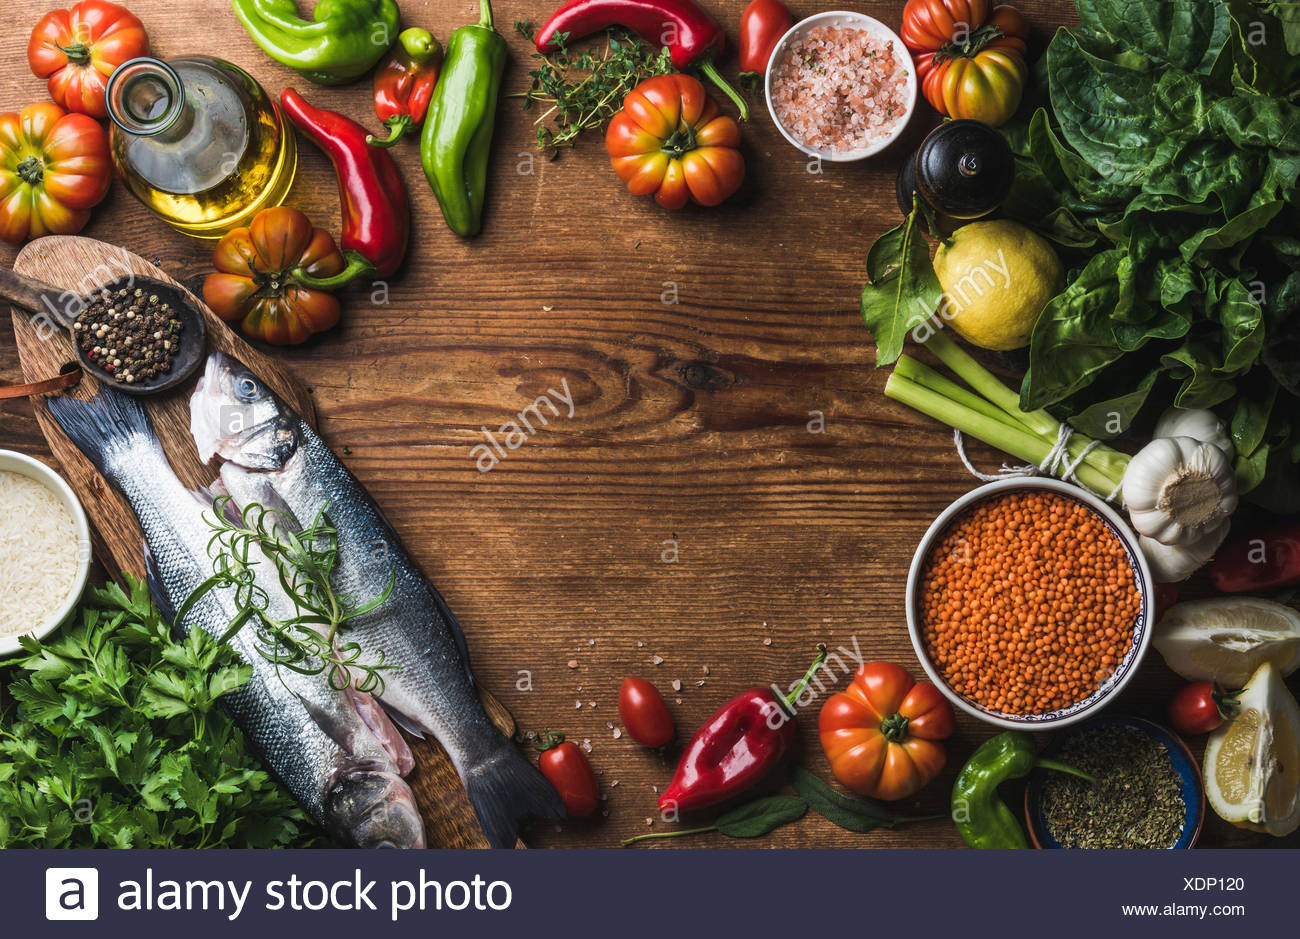 Ingredients for cooking healthy dinner. Raw uncooked seabass fish with vegetables, grains, herbs and spices over rustic wooden b - Stock Image